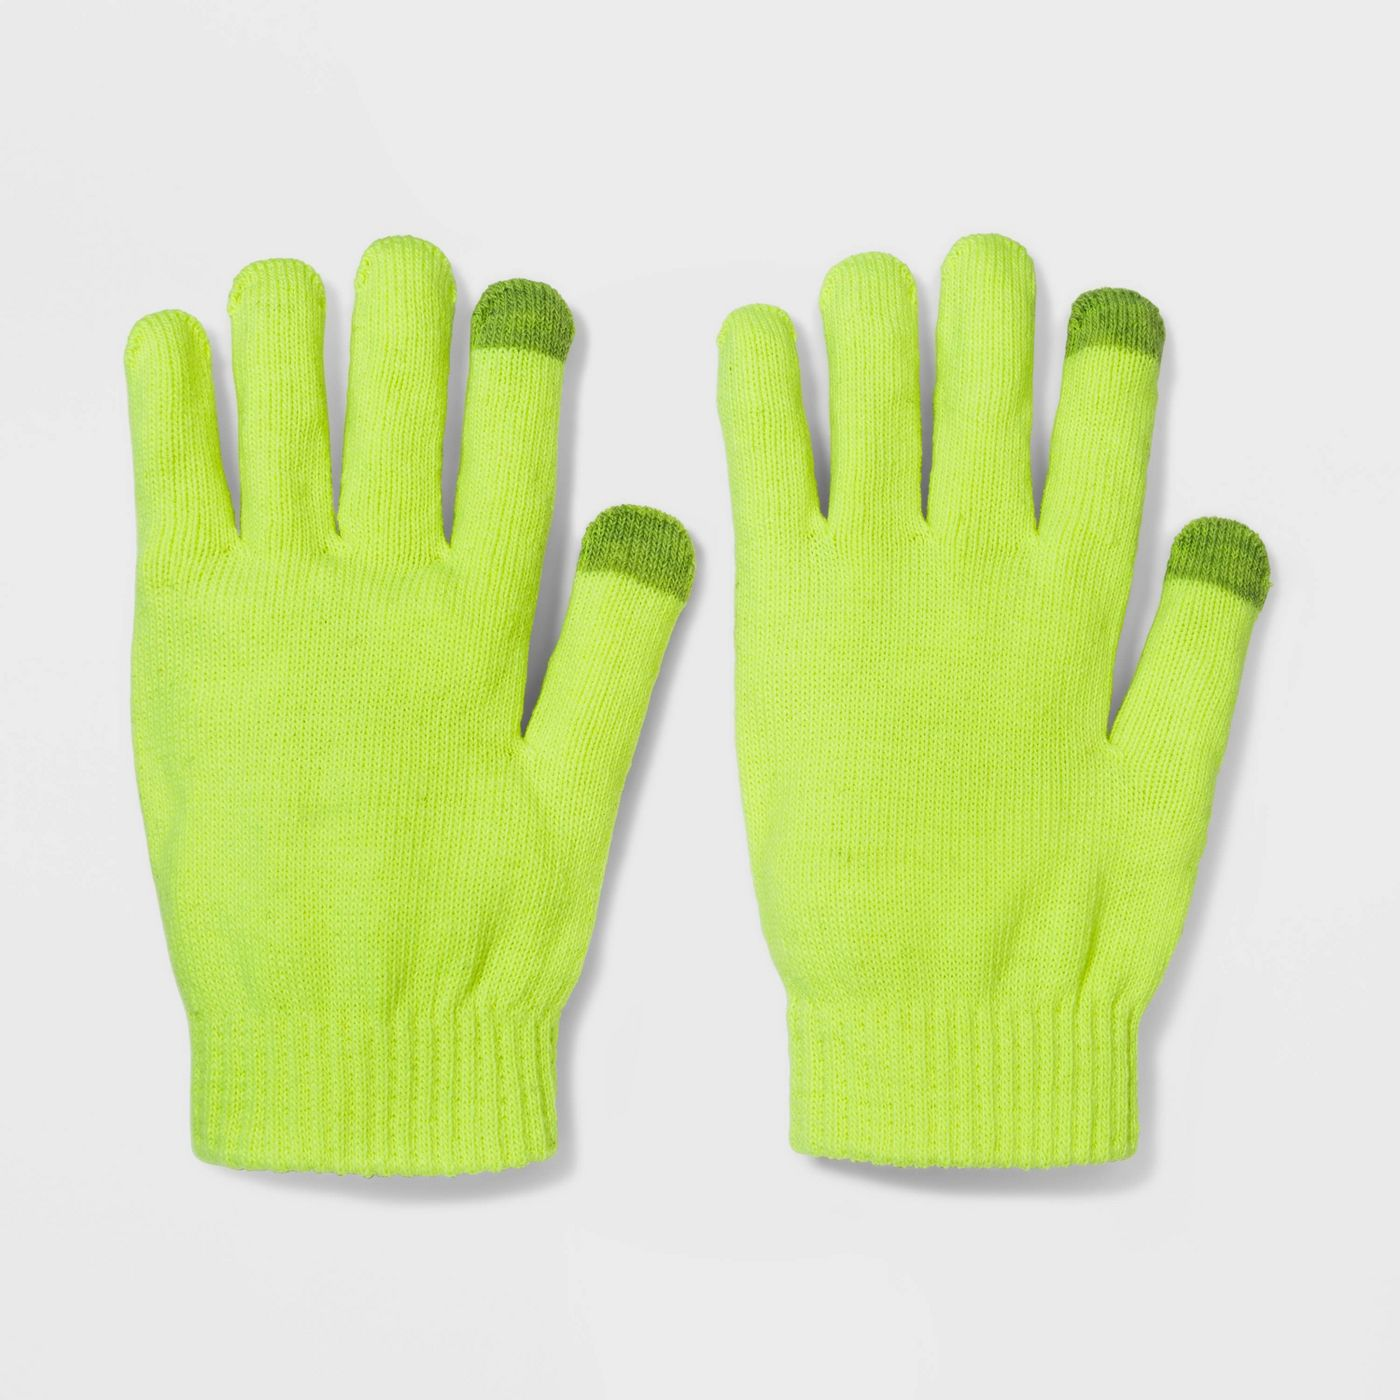 Women's Tech Touch Magic Gloves - Wild Fable™ One Size - image 1 of 2